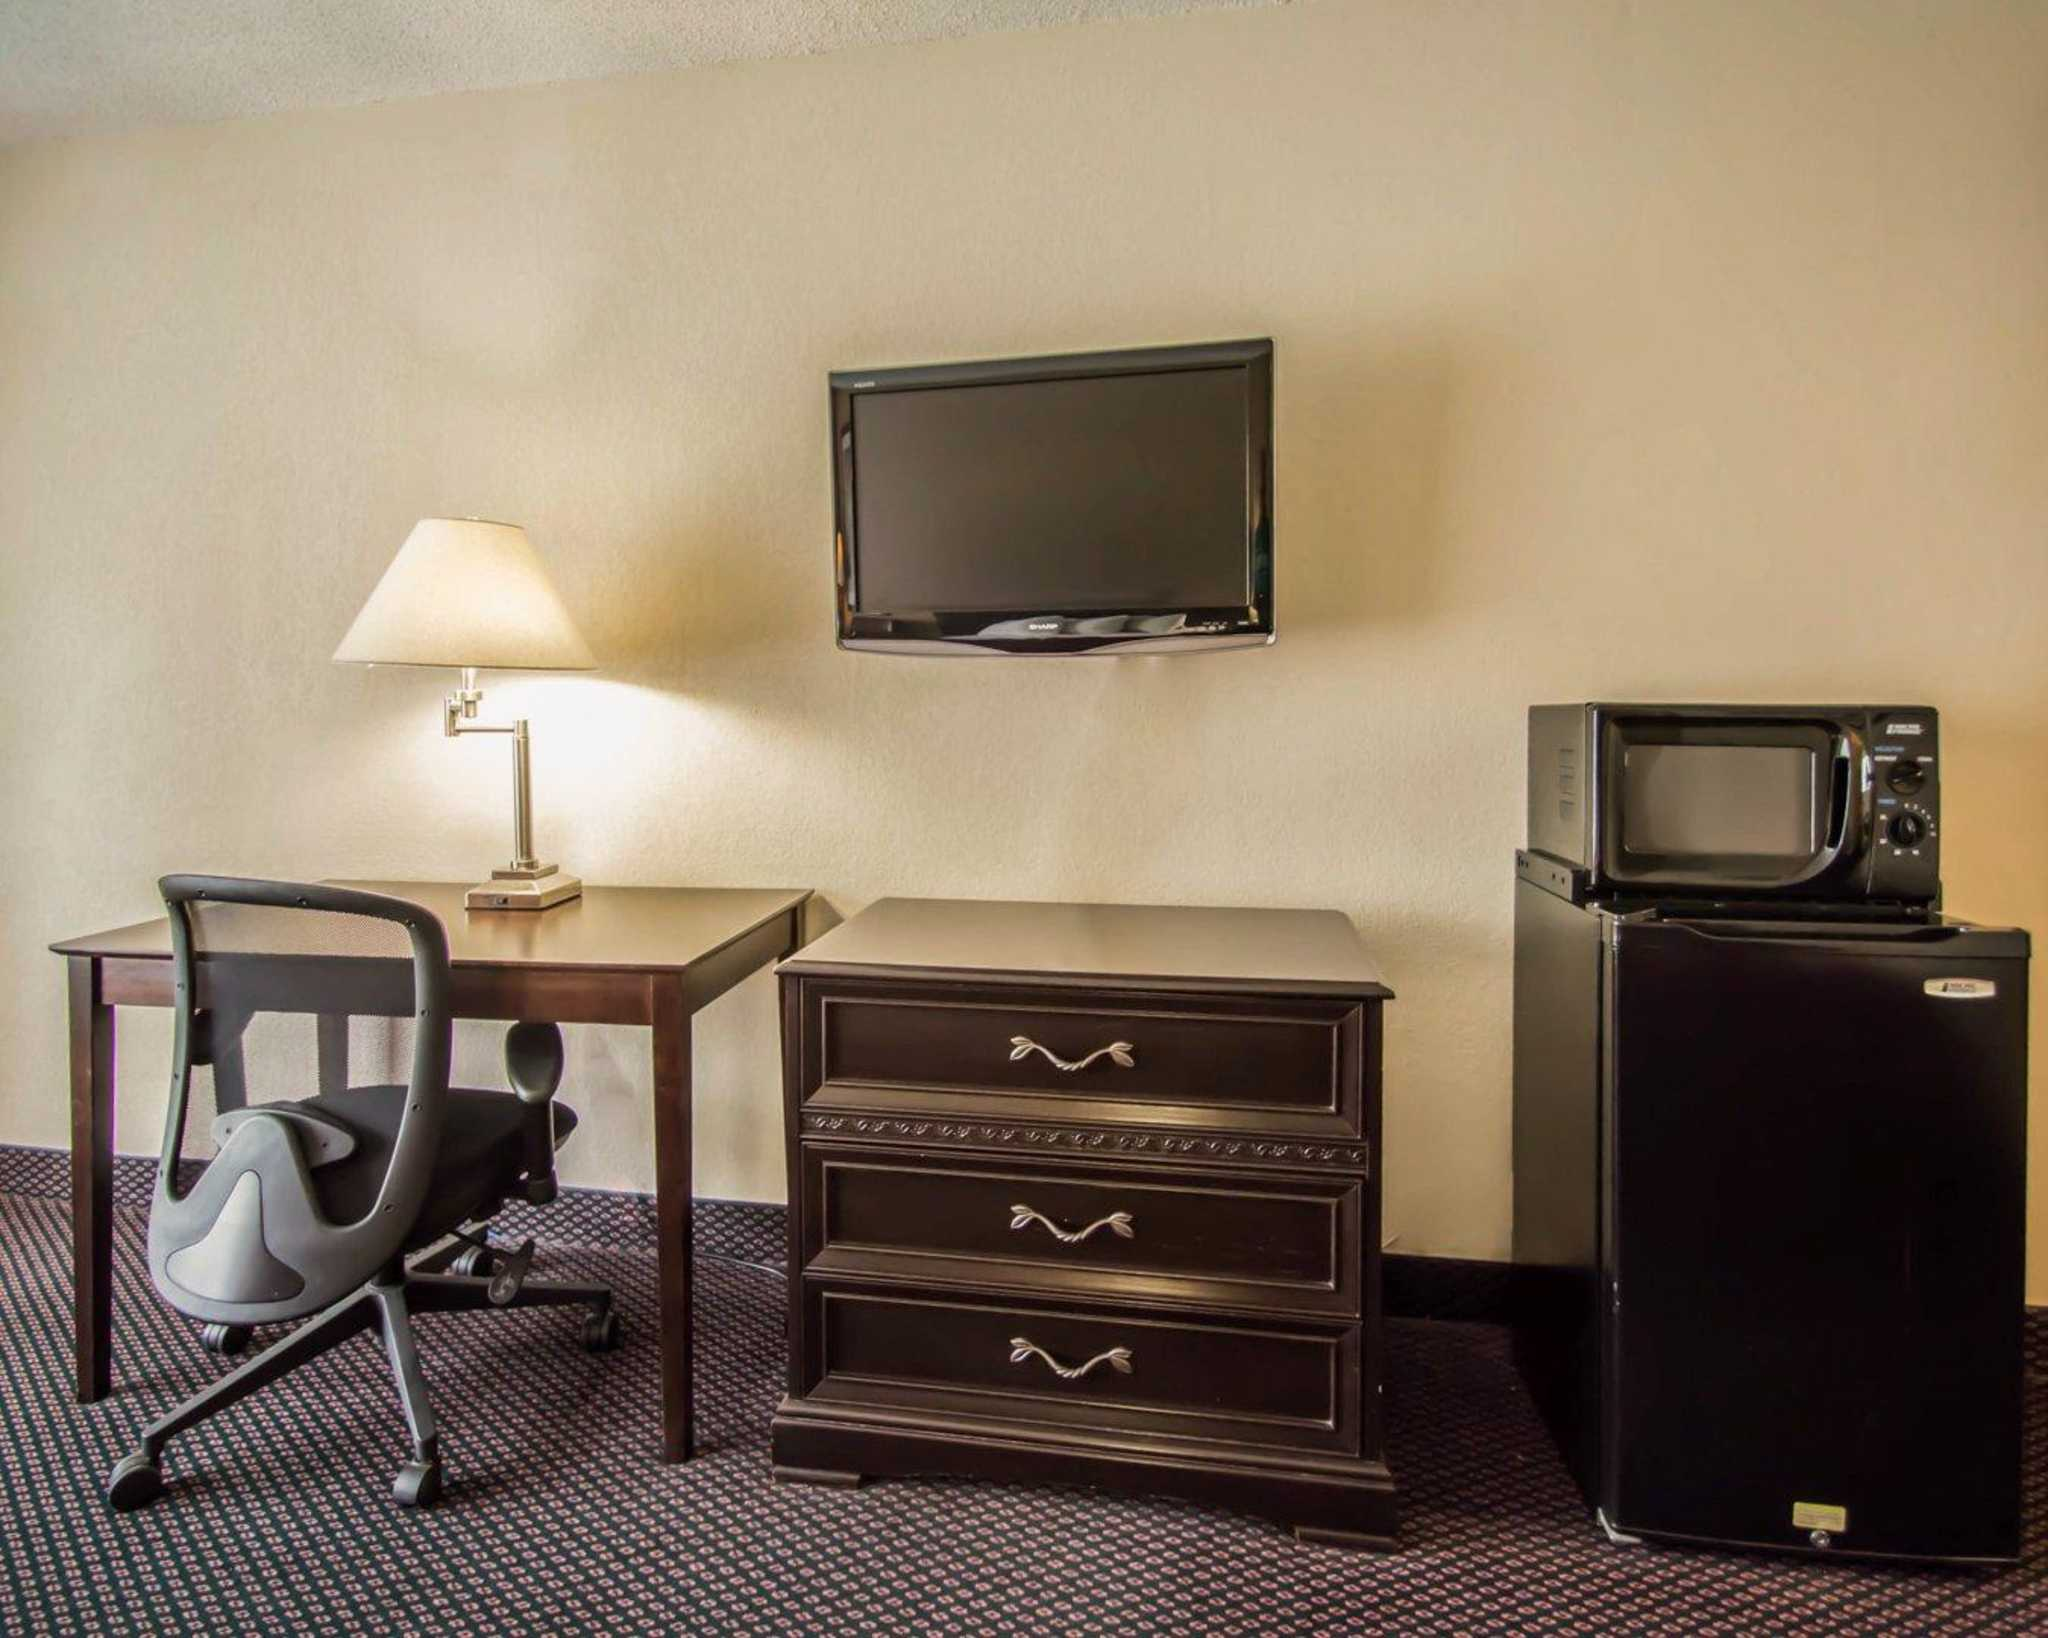 Quality Inn I-75 at Exit 399 image 12